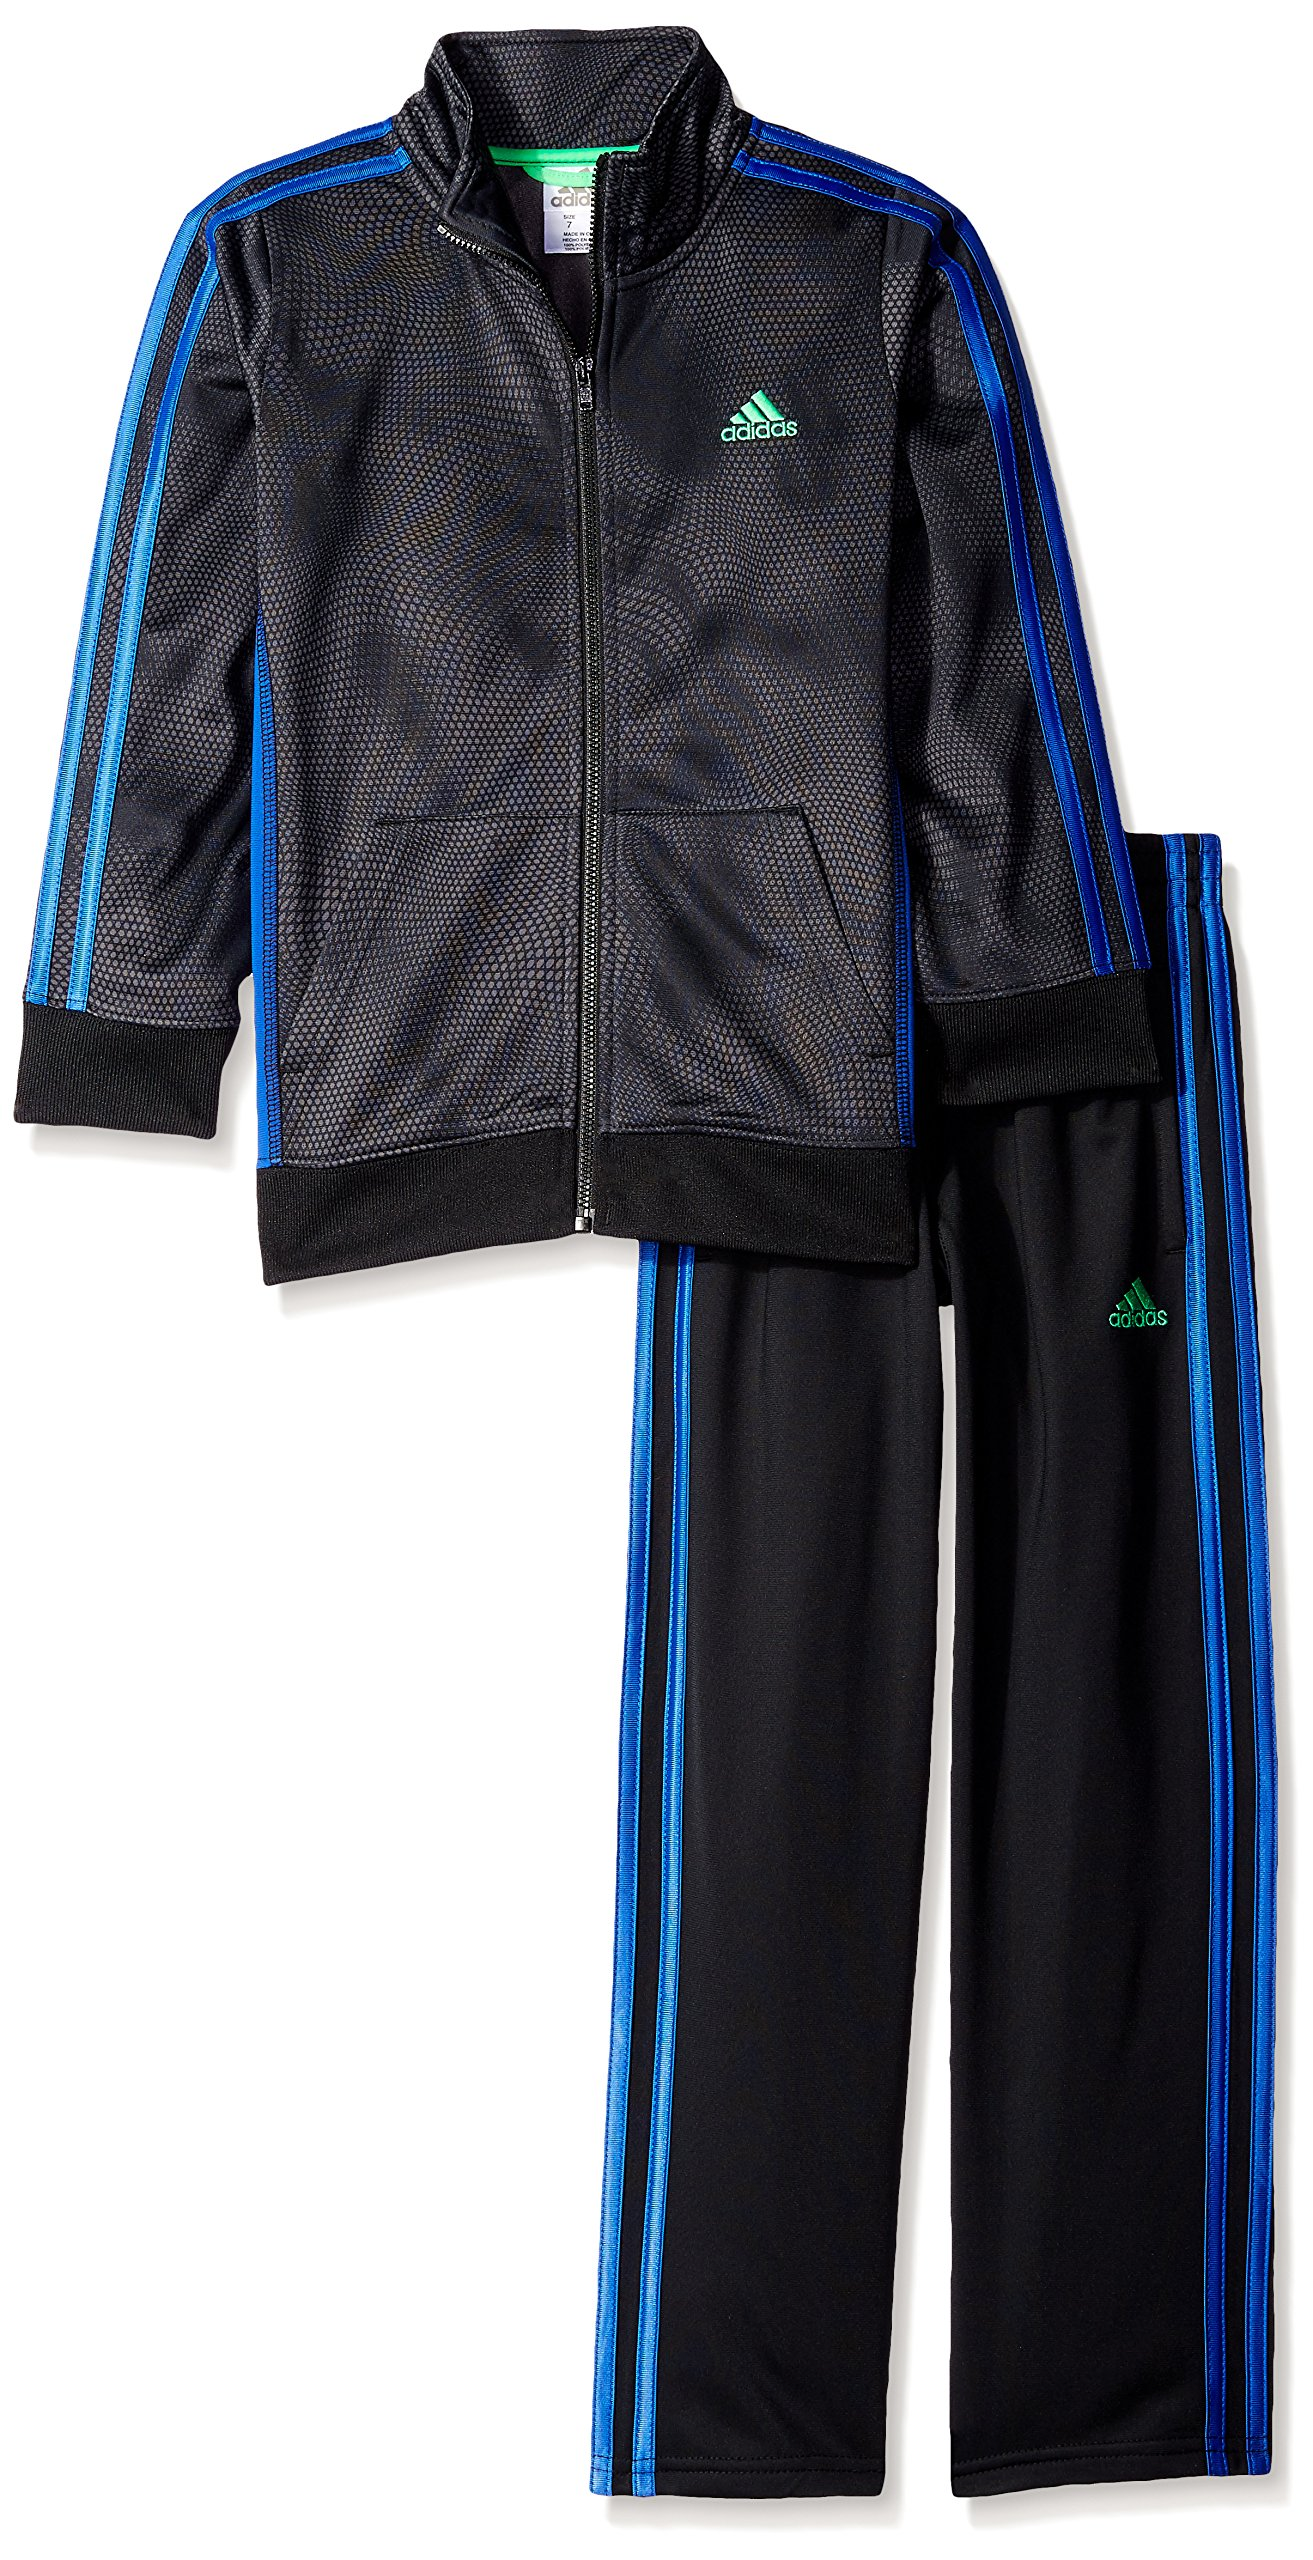 adidas Little Boys' Iconic Tricot Jacket and Pant Set, Black Print, 5 by adidas